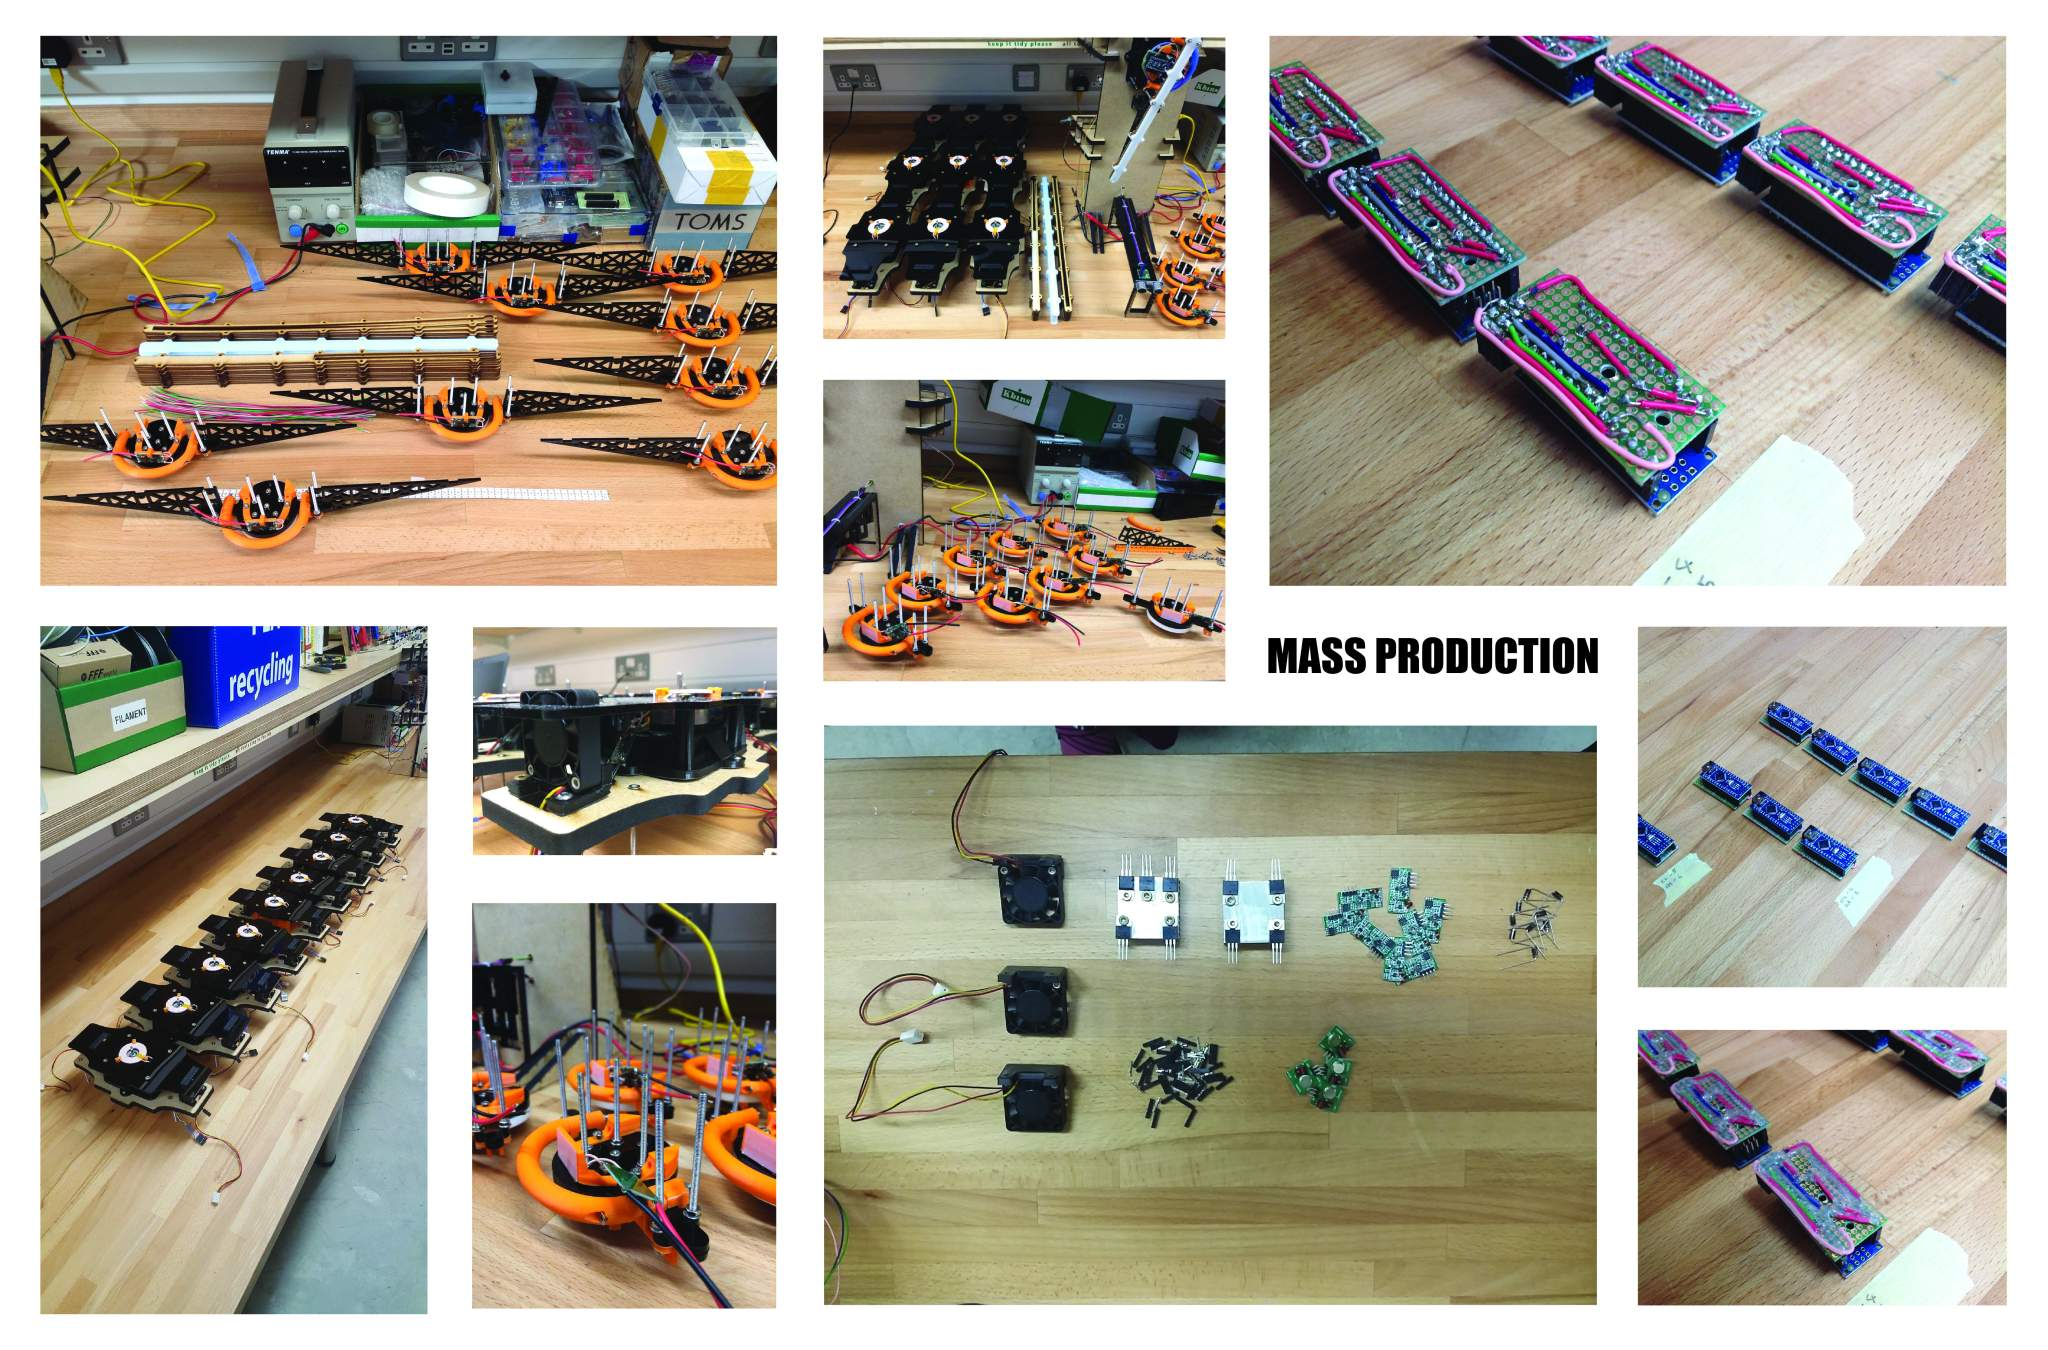 masss_fabrication-02-01